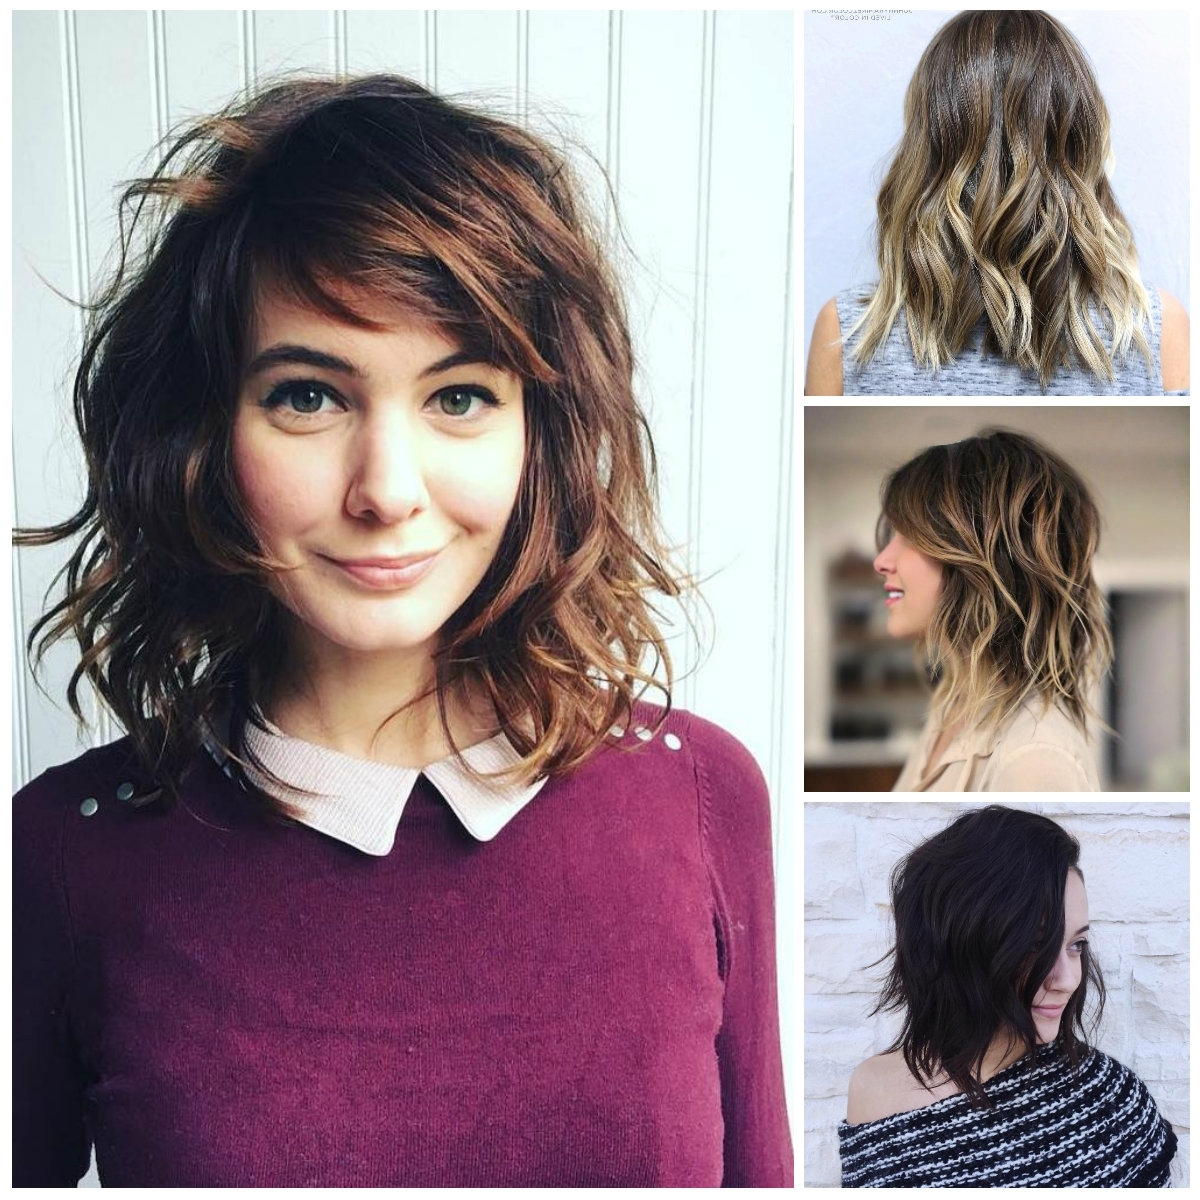 2017 Haircuts, Hairstyles And Inside Fashionable Medium Shaggy Curly Hairstyles (View 1 of 15)